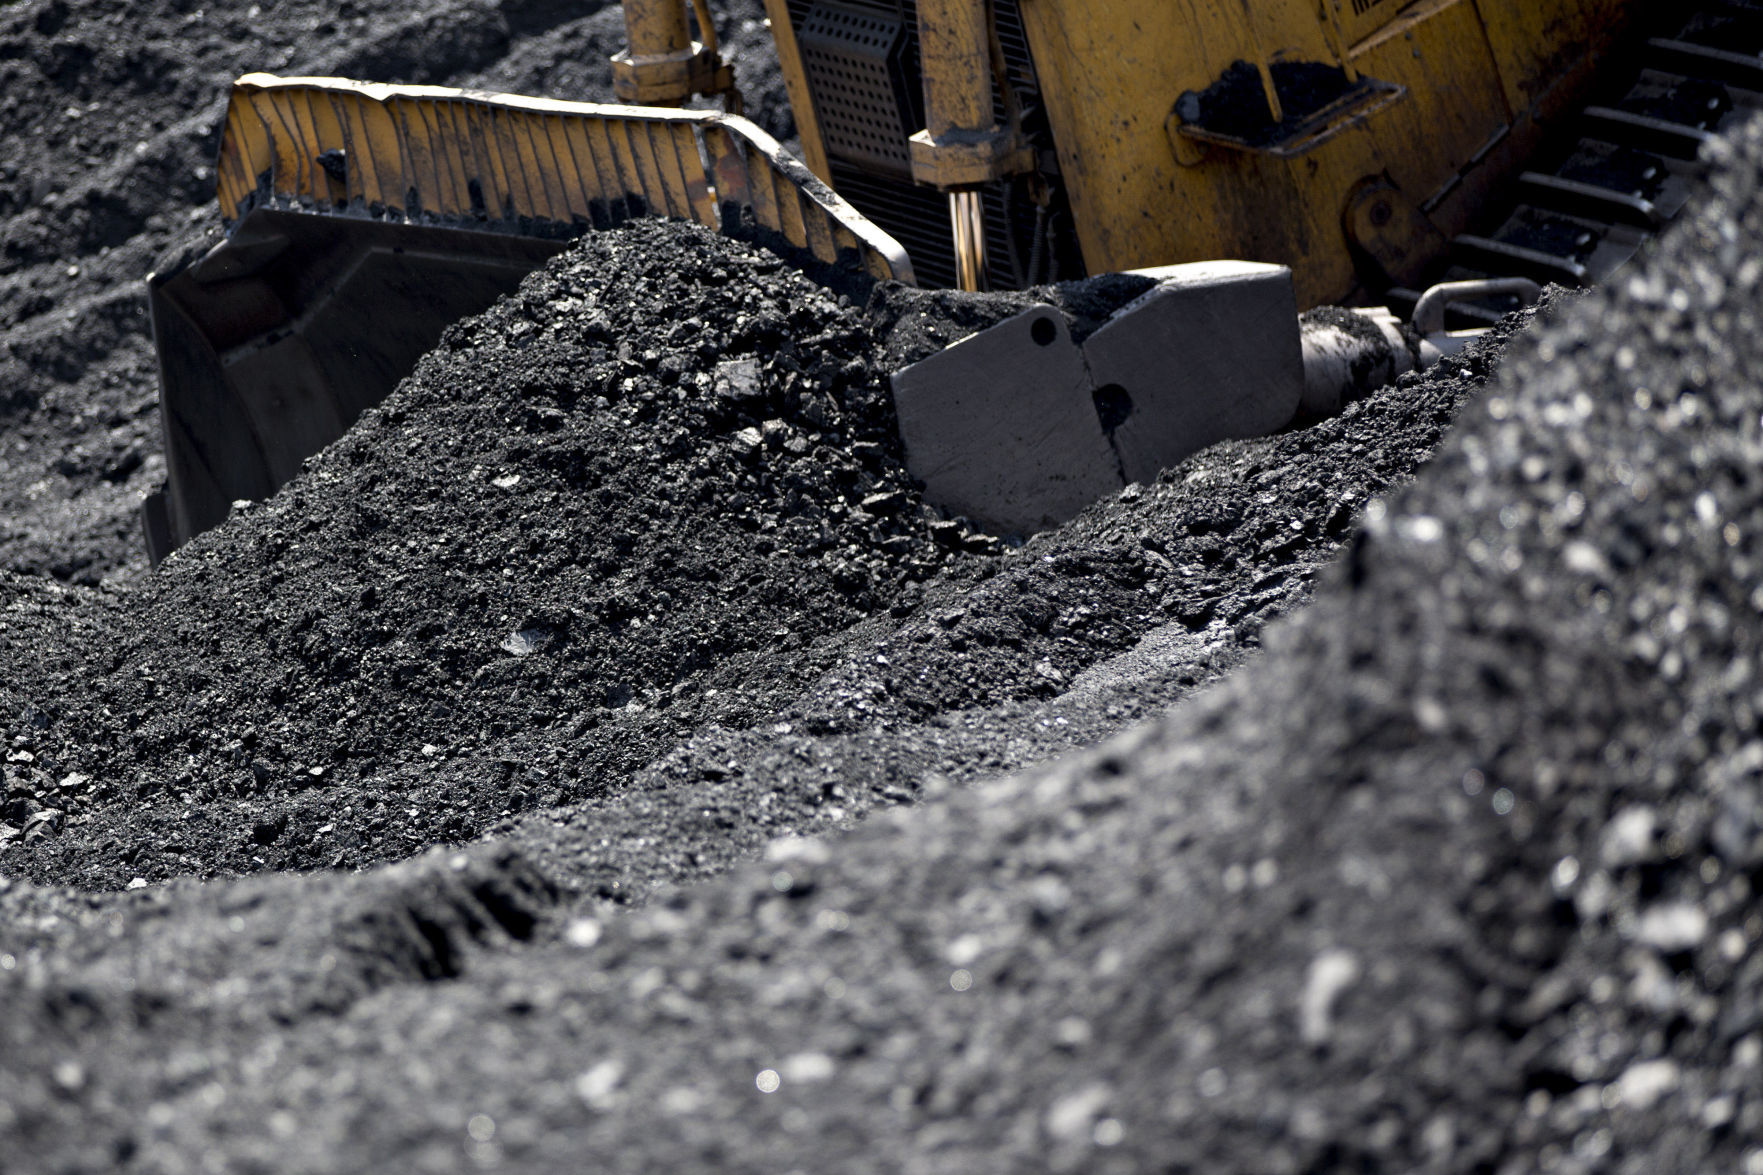 A dozer pushes raw coal at a